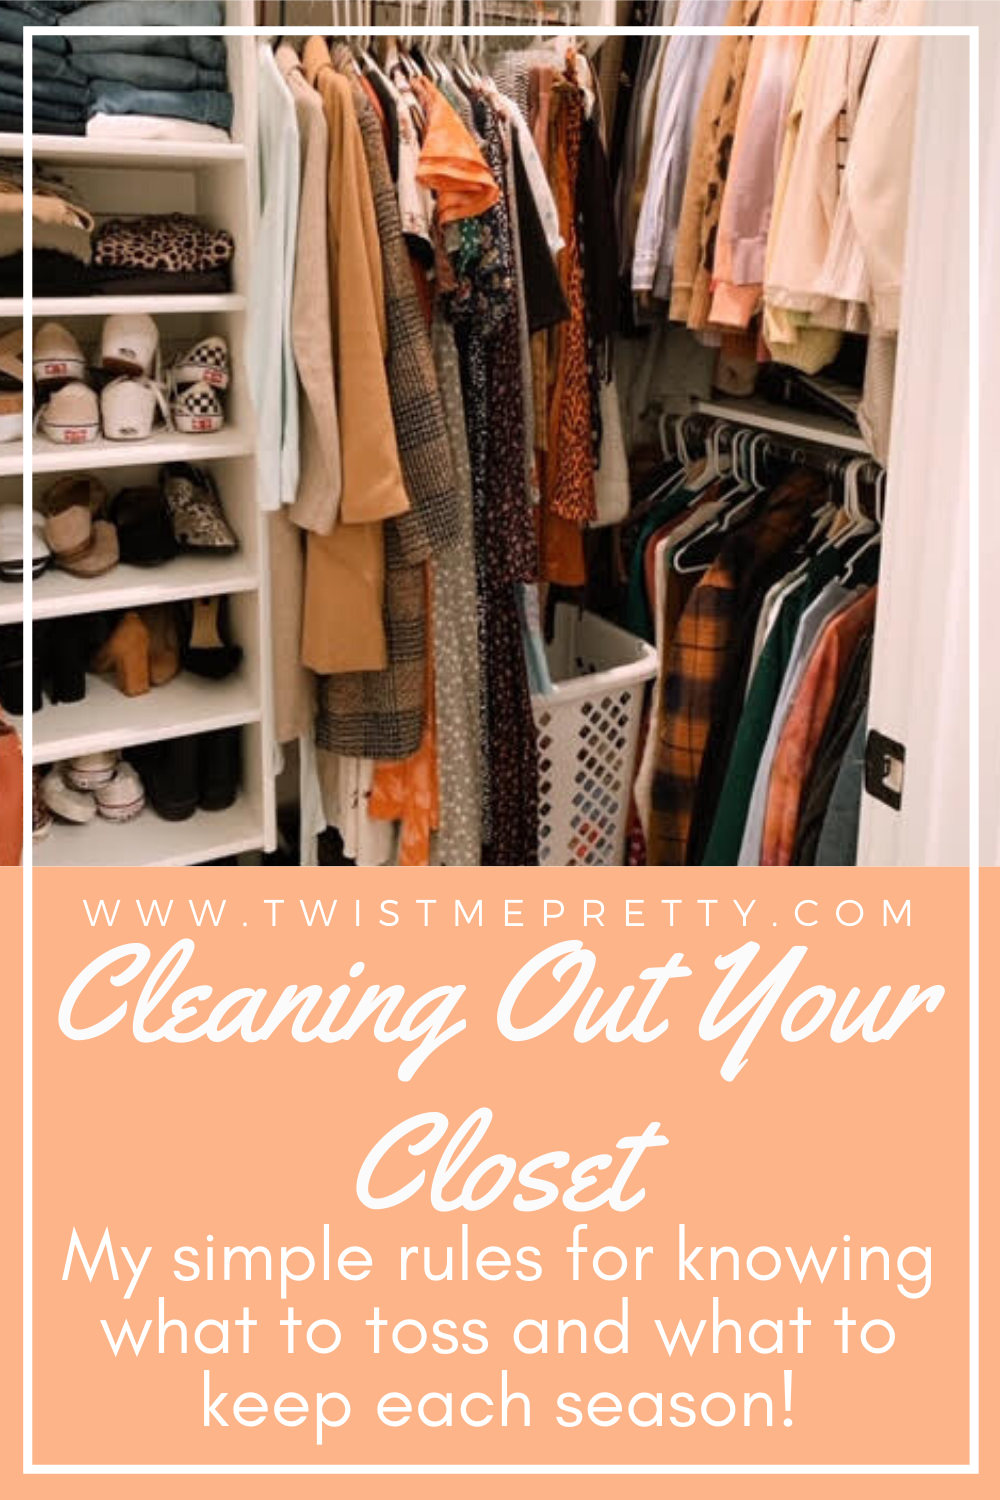 Cleaning Out Your Closet- My simple rules for knowing what to toss and what to keep each season! www.twistmepretty.com